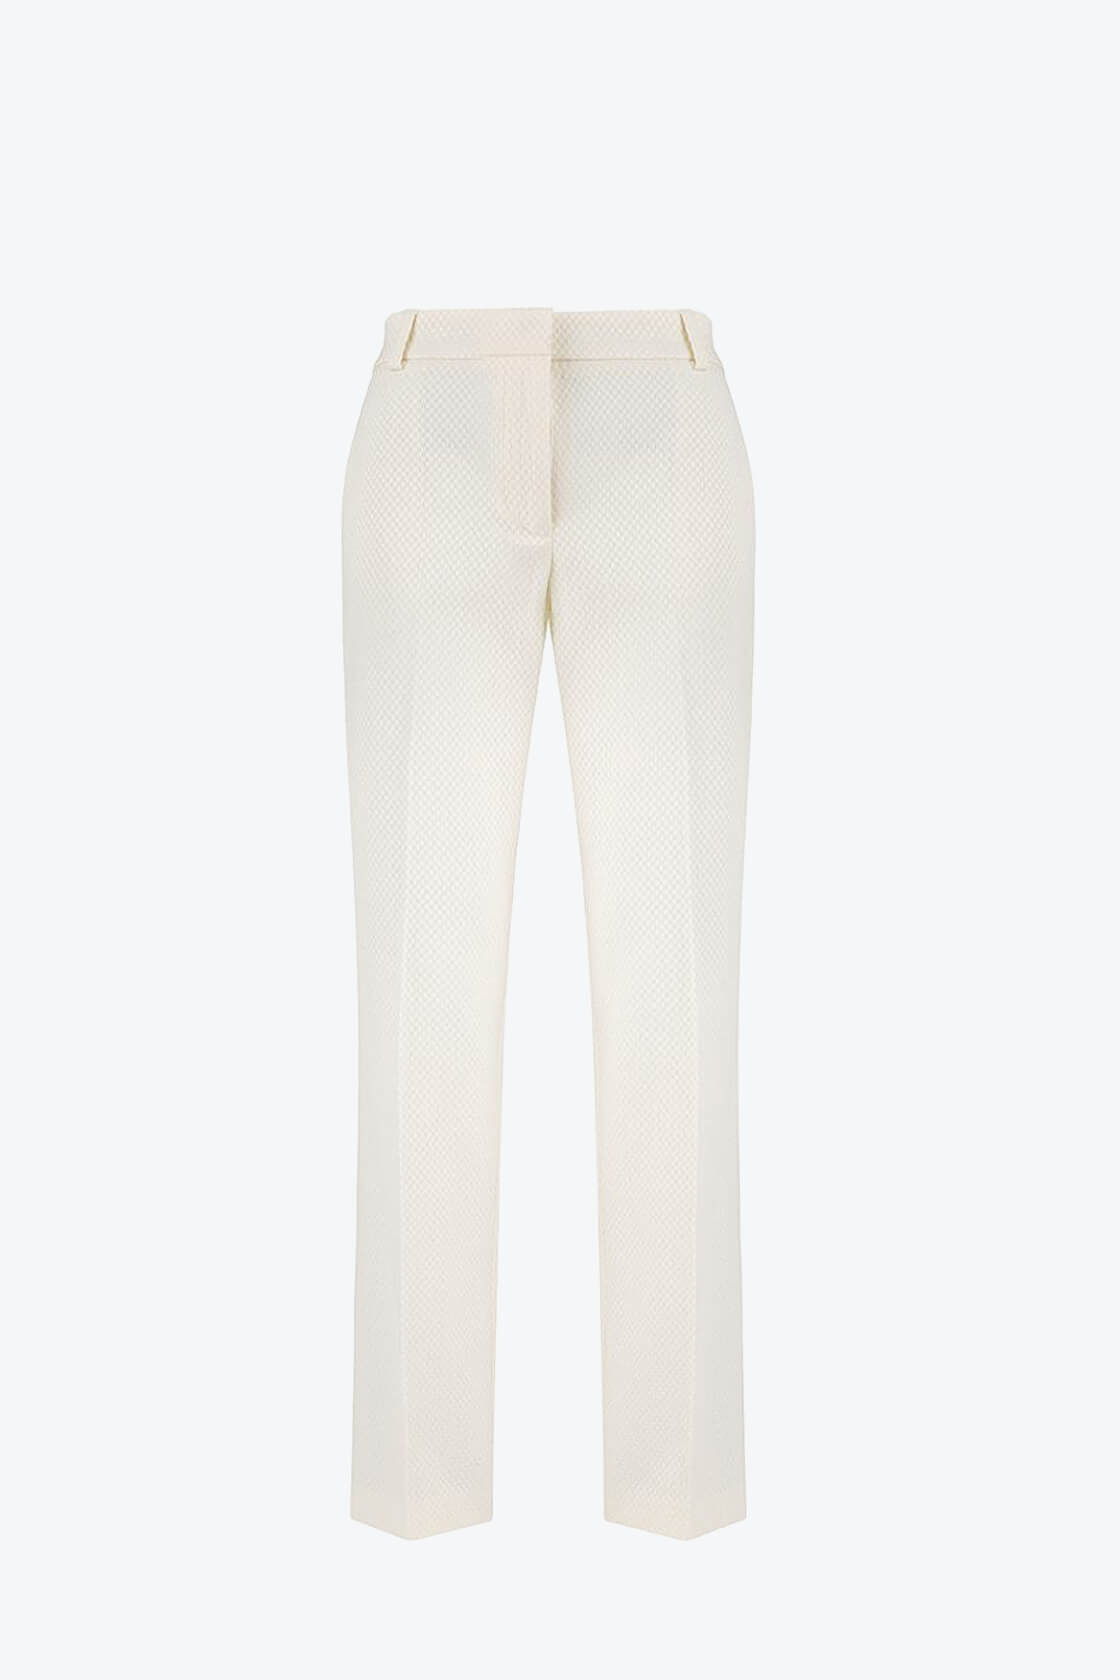 OL100002640 Dana Slim Fit Pleated Pants White1